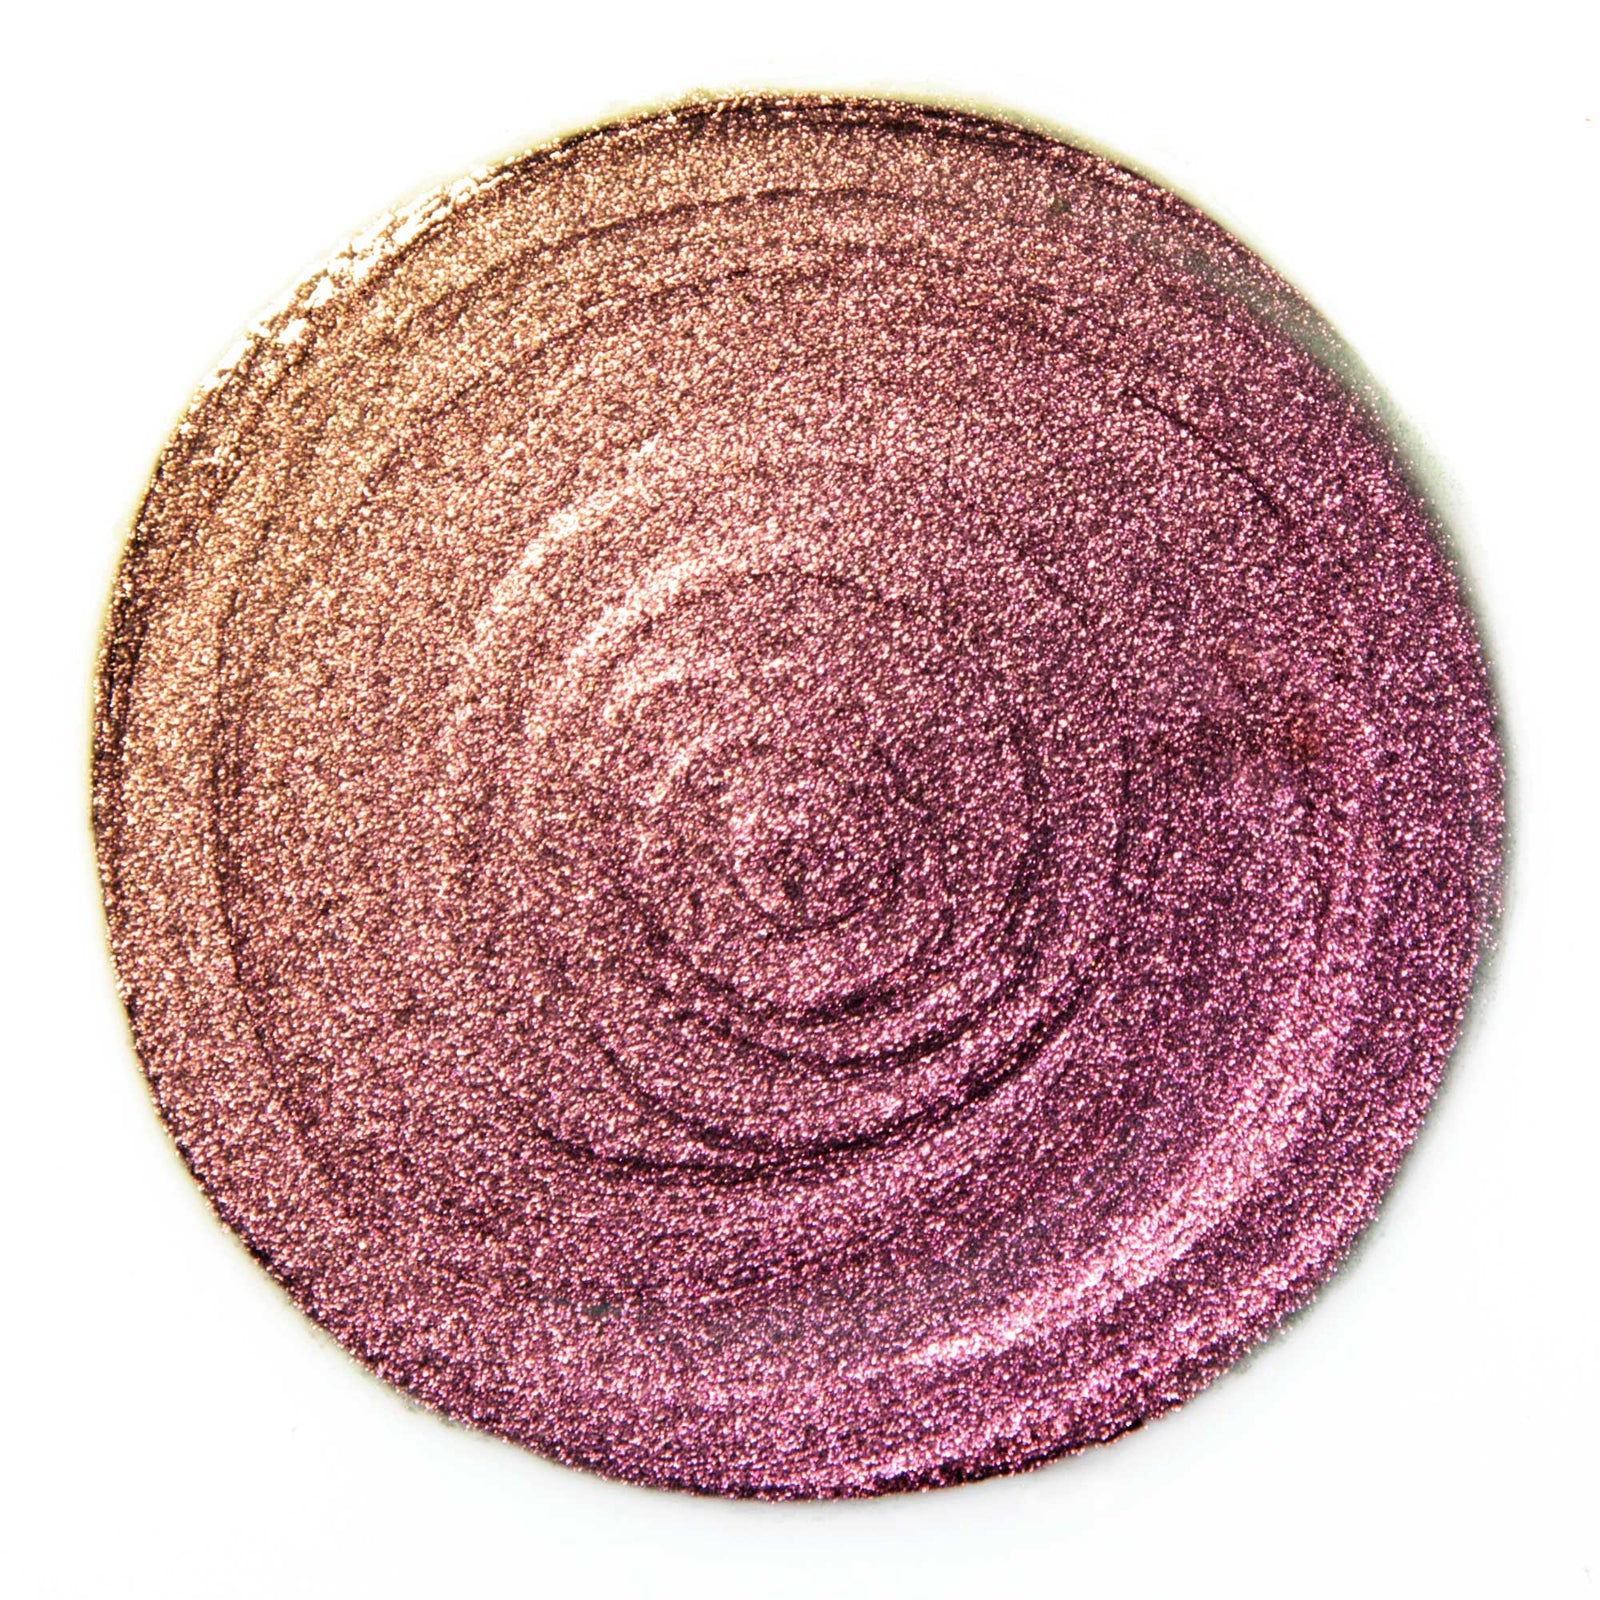 Andromeda Celestial Sphere Eye Soot iridescent natural glitter cream eyeshadow swatch